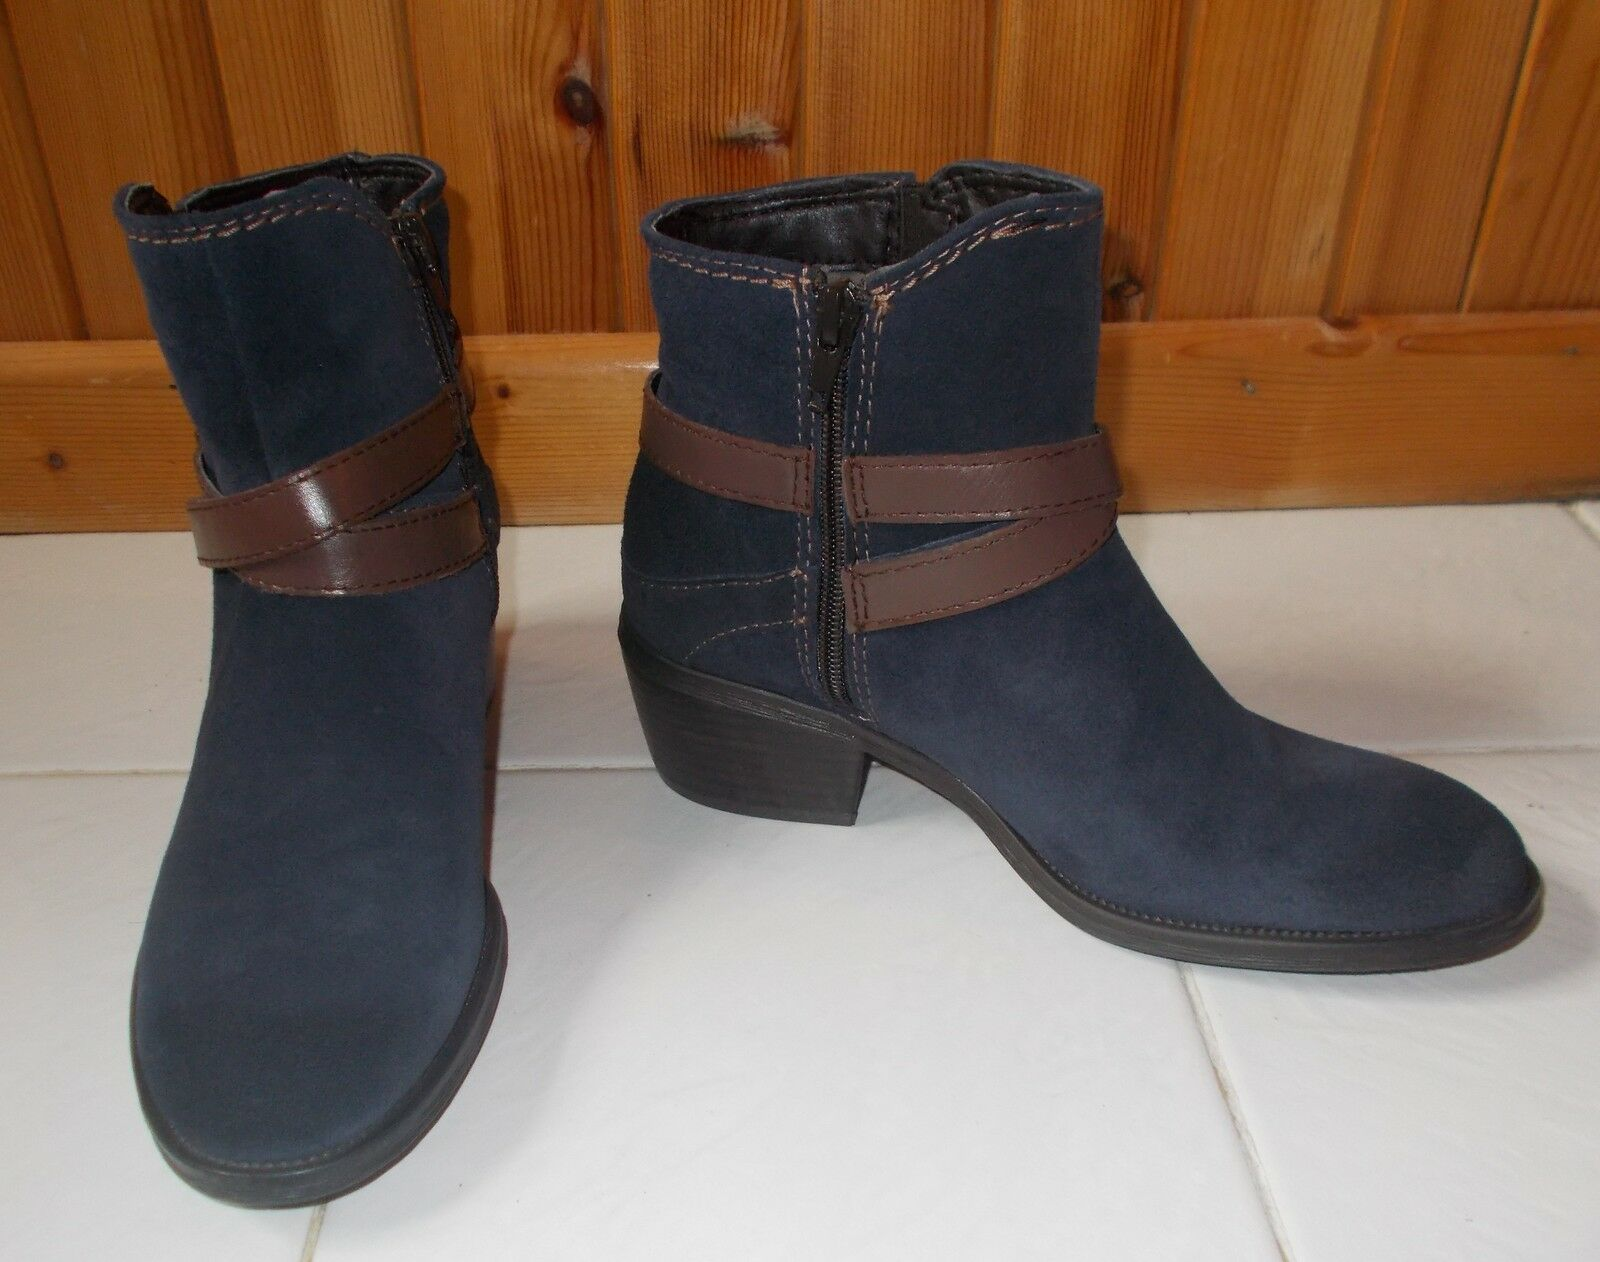 Sze 3 (36) VERY EXPENSIVE TOP QUALITY very comfortable navy suede leather boot